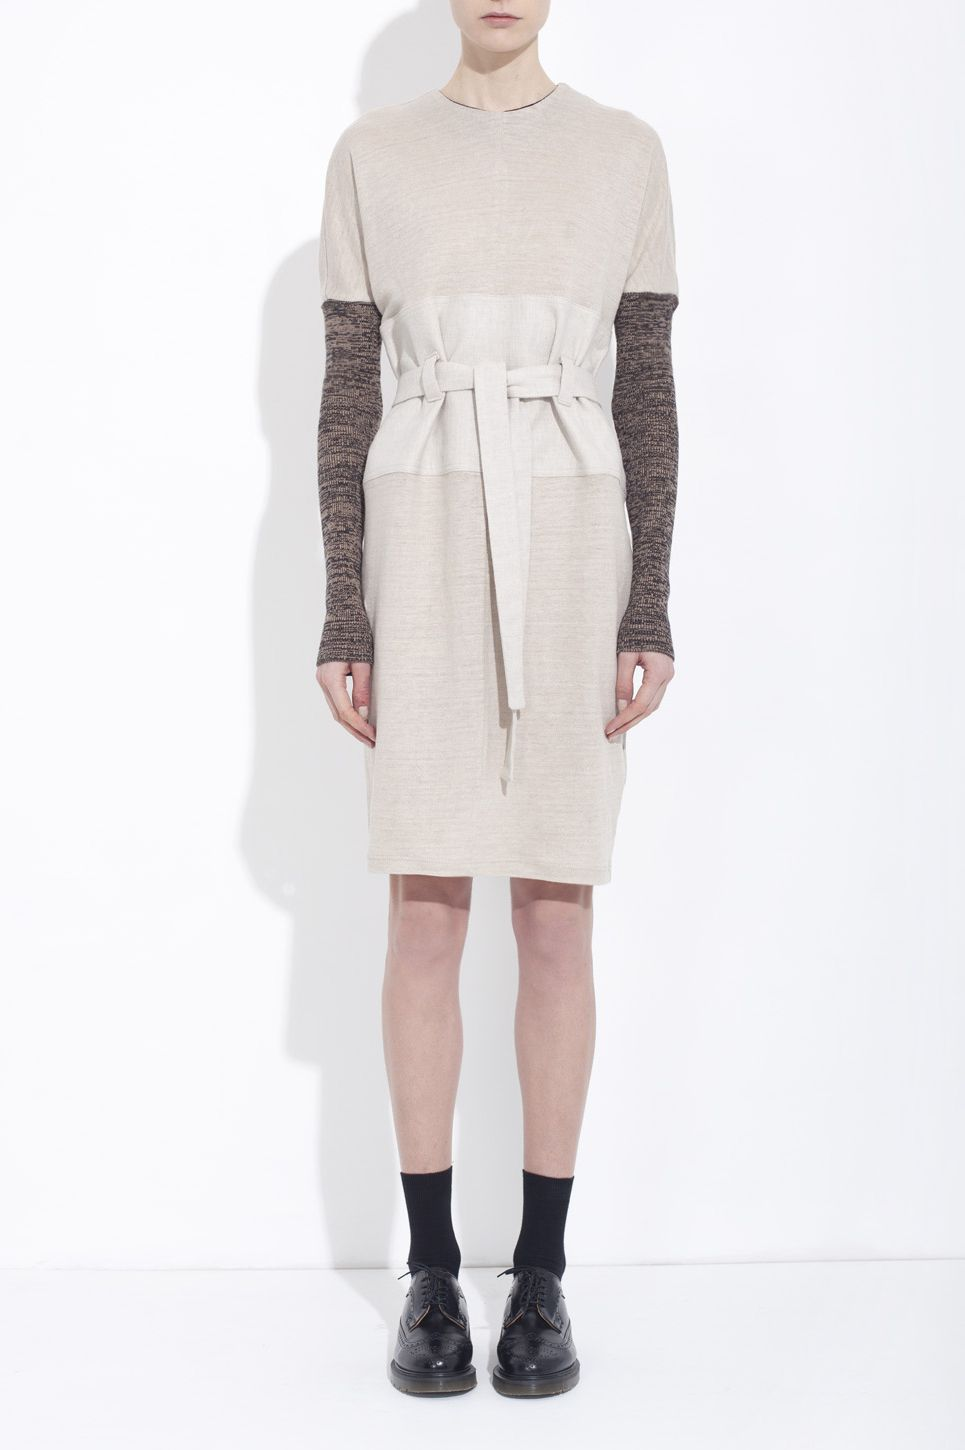 Sand-coloured organic linen jersey-knit dress, marled knit sleeves - honest by. Bruno Pieters / Vegan / Organic/ Skin friendly / European